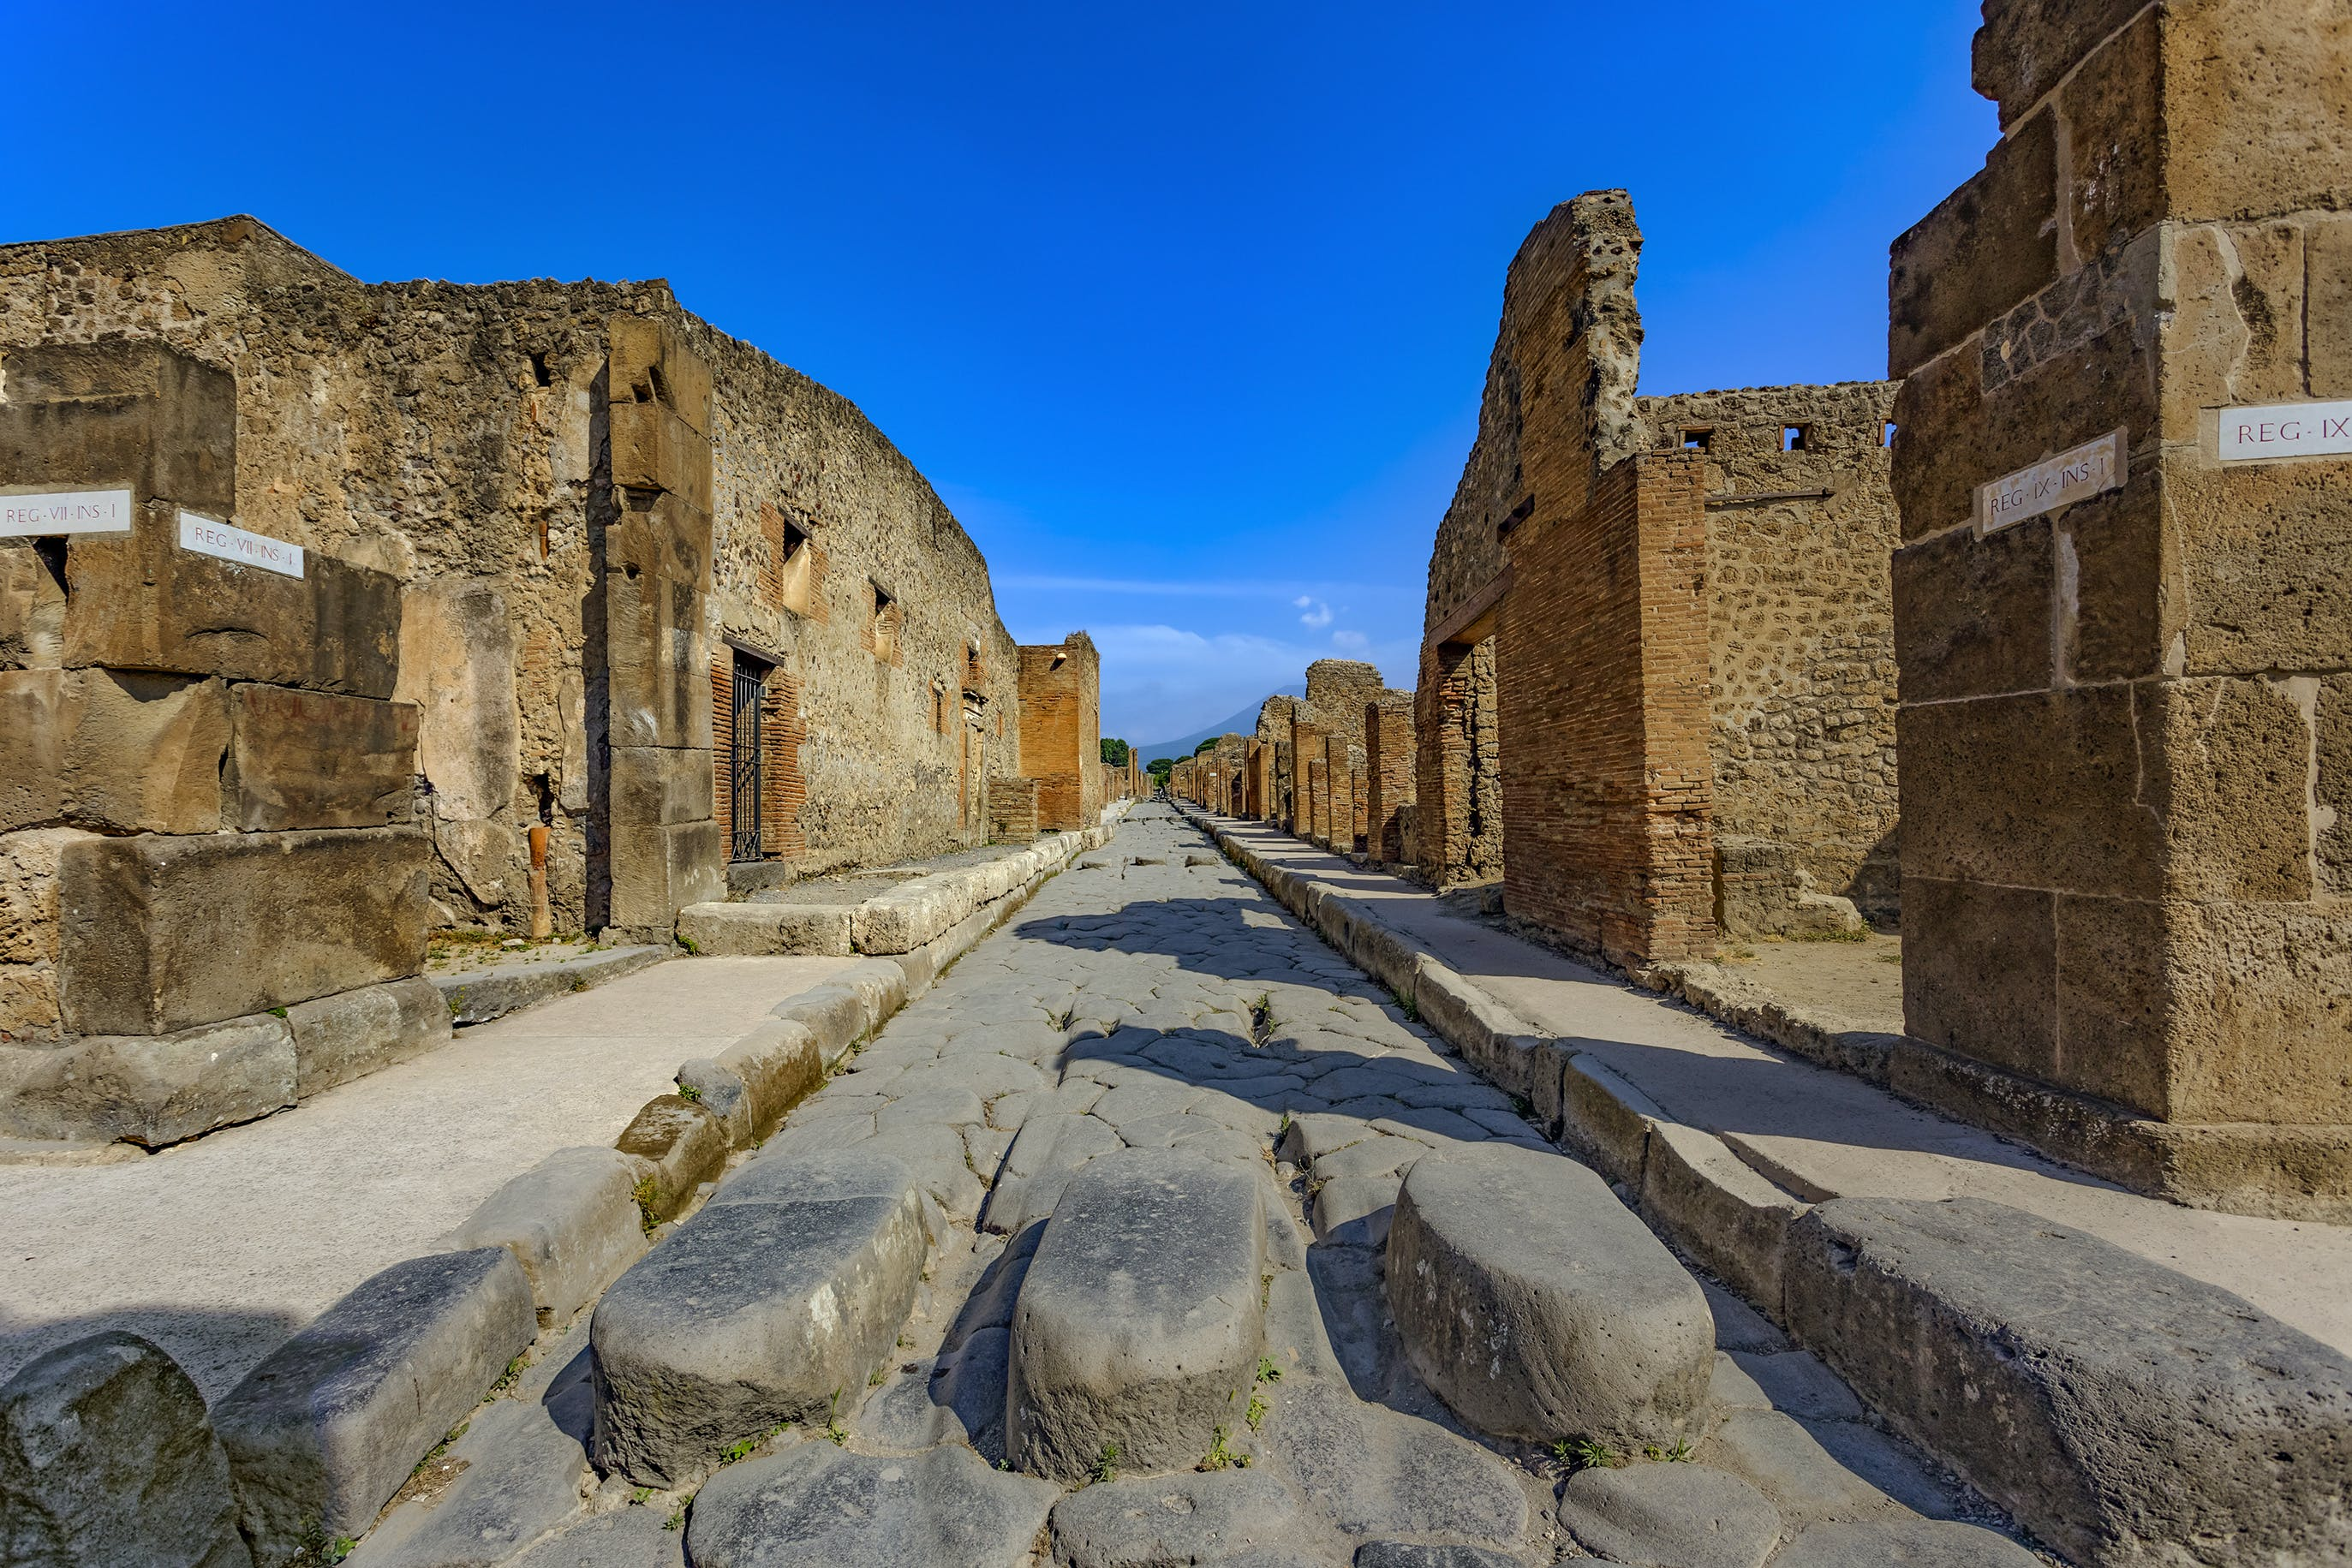 Skip The Line Tickets With Optional Guided Visit For The Ruins Of Pompeii Musement